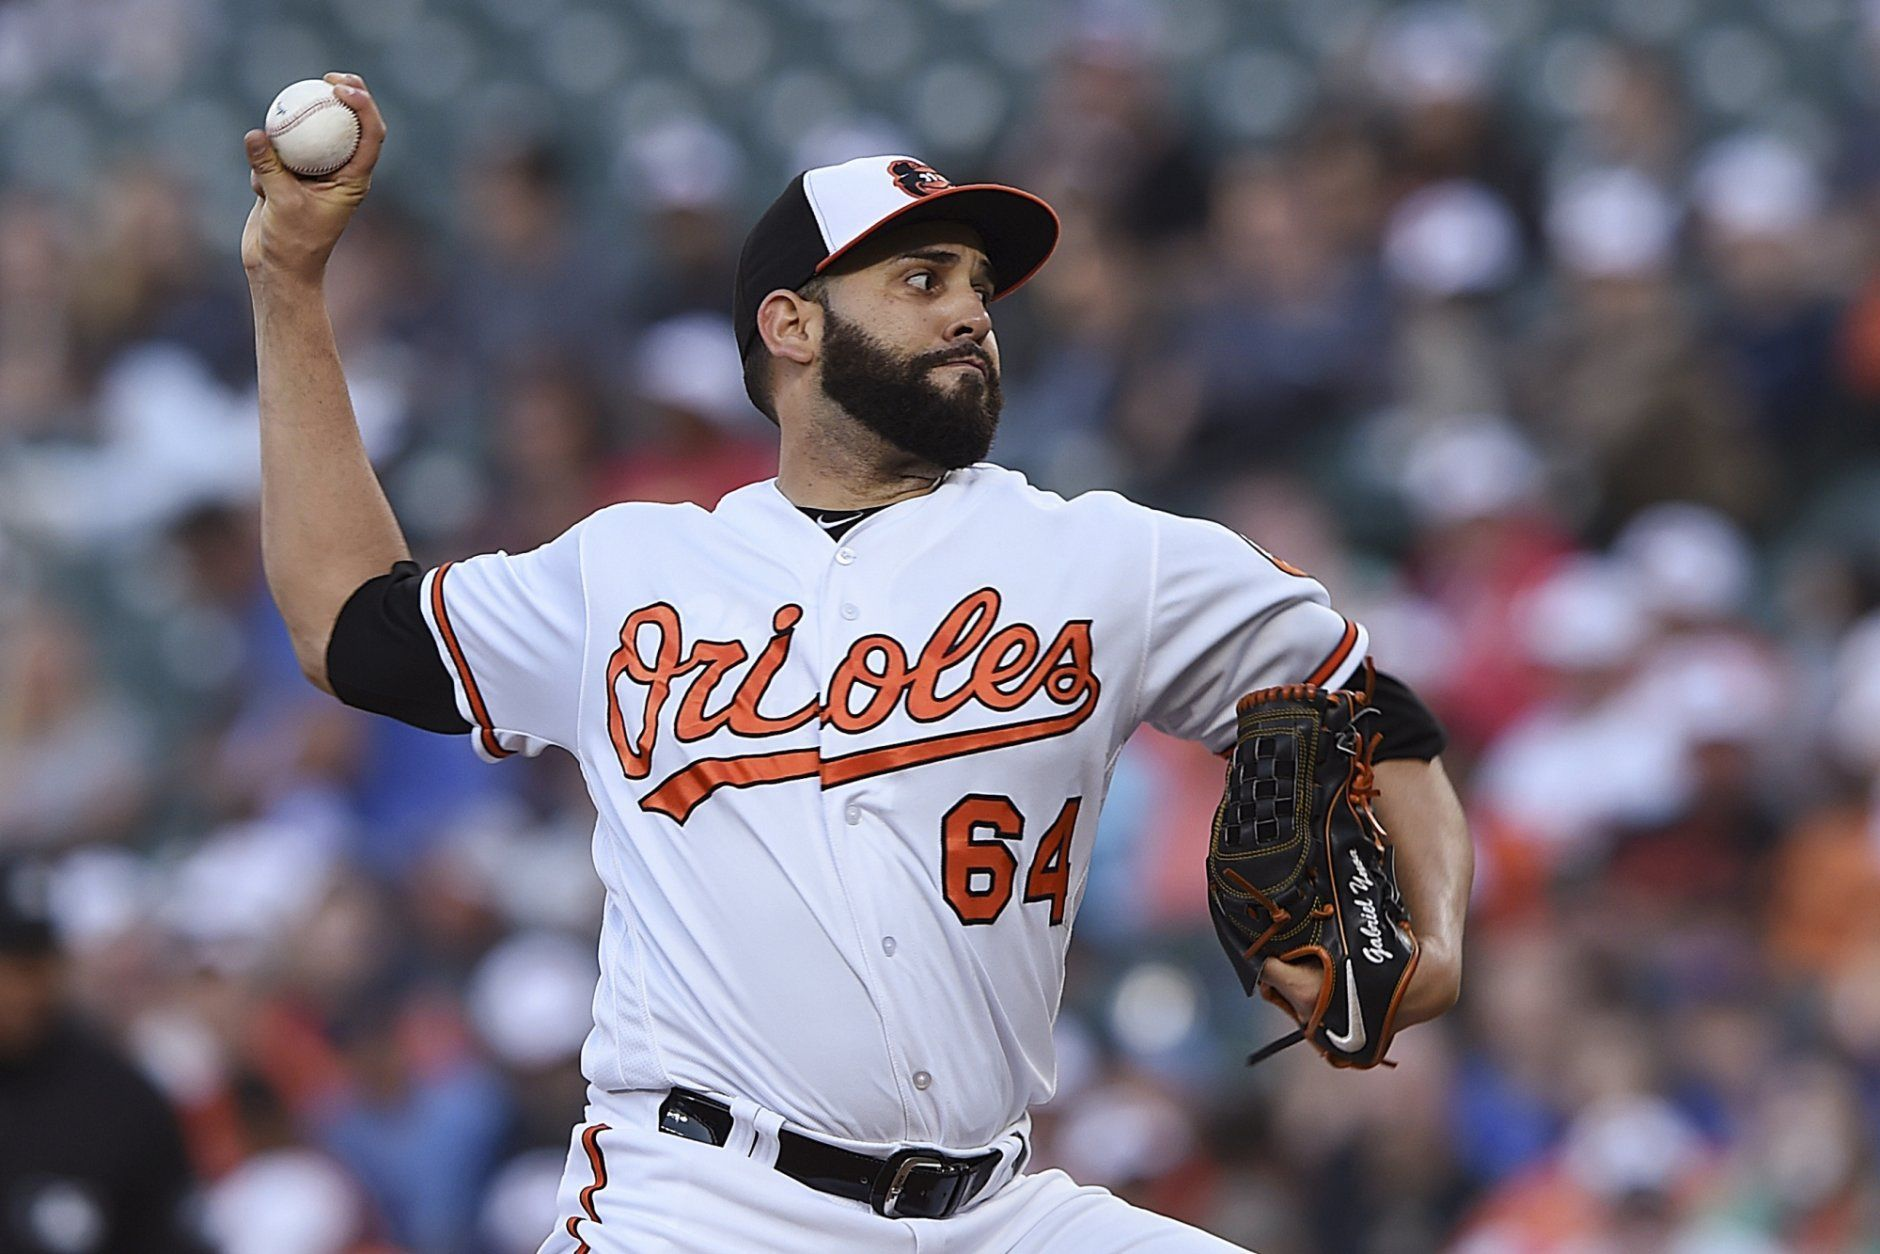 Baltimore Orioles pitcher Gabriel Ynoa delivers against the Toronto Blue Jays during the first inning of a baseball game Thursday, June 13, 2019, in Baltimore. (AP Photo/Gail Burton)